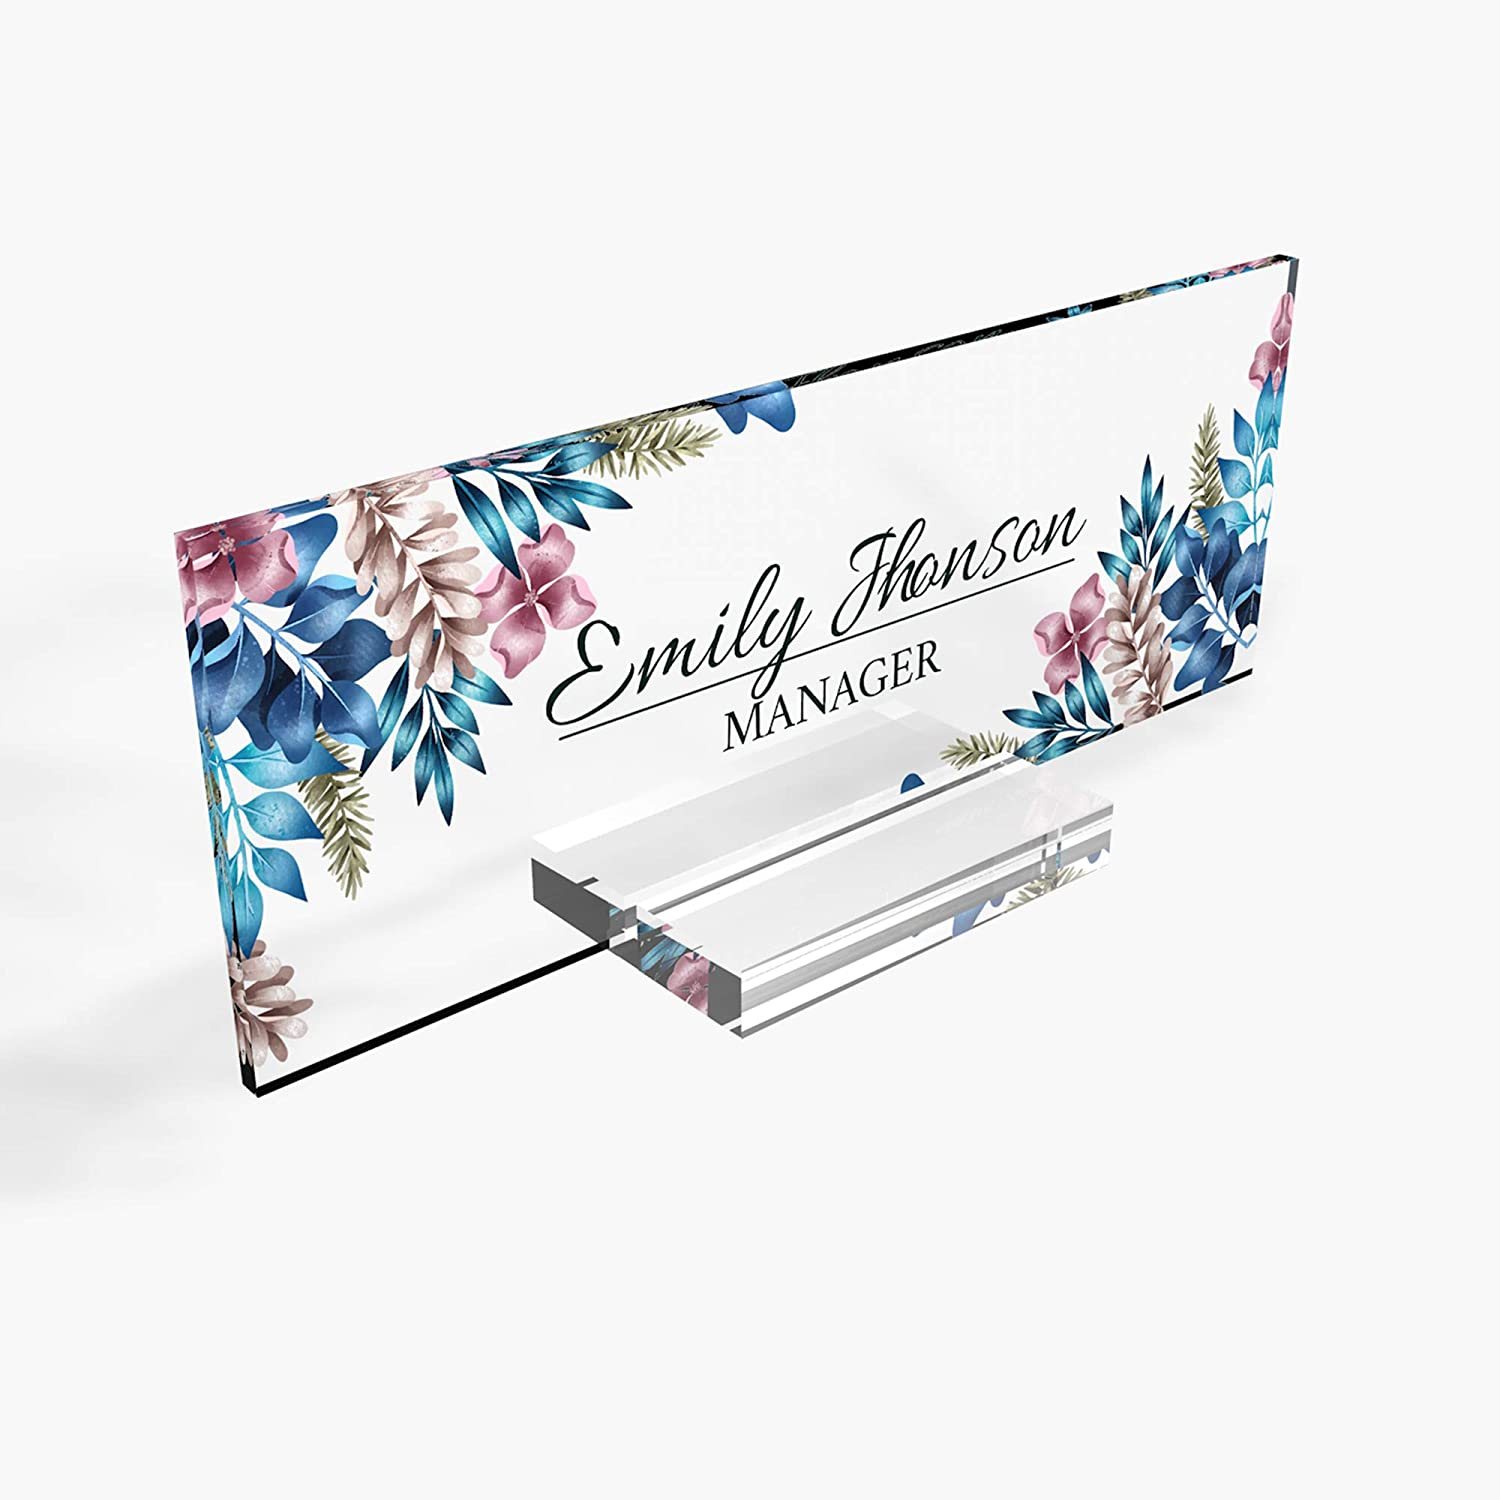 "Personalized nameplate Desk Decor Office Unique Gift Custom Logo tech Desk Custom Name Plate for him and her Occasion Gift for Teacher frineds (8""x2.5"") (Blue Flower)"